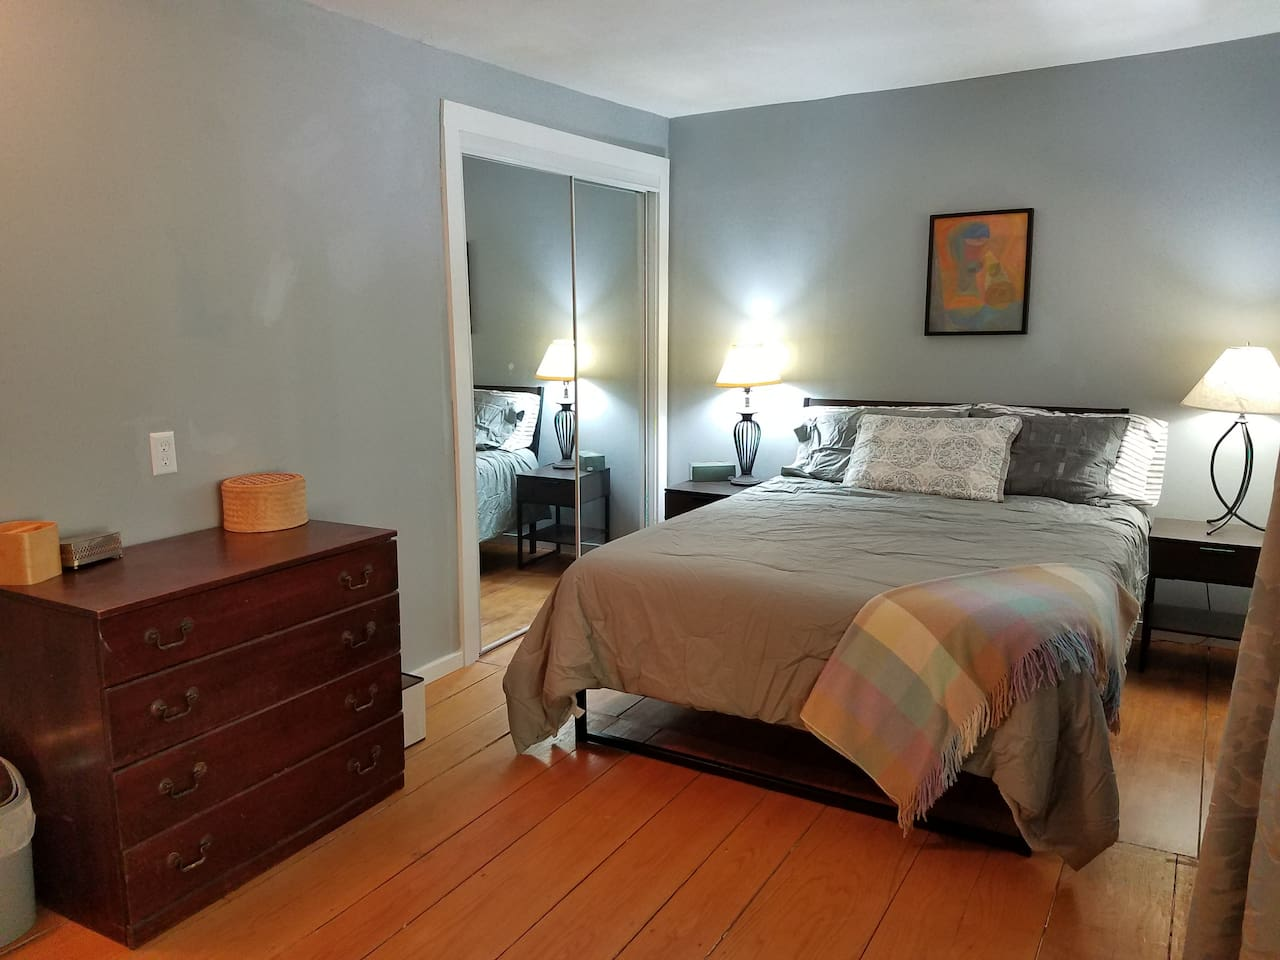 The apartment includes a spacious bedroom with a queen size Tempur-Pedic mattress.